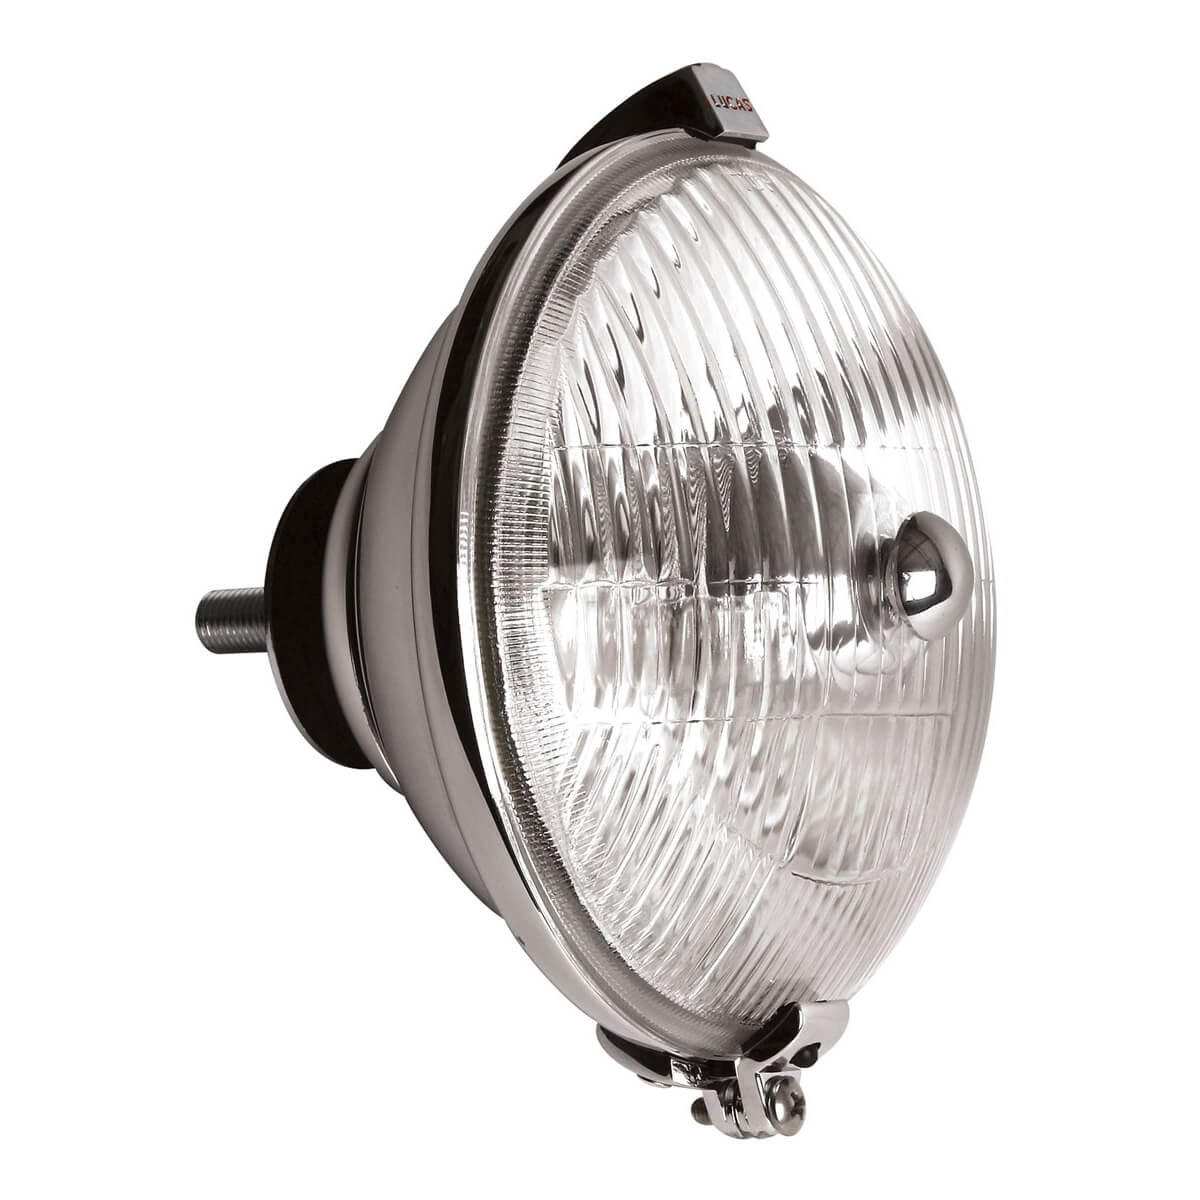 Driving and Fog Lamps, Back Mount - Lamps & Lighting - Electrical